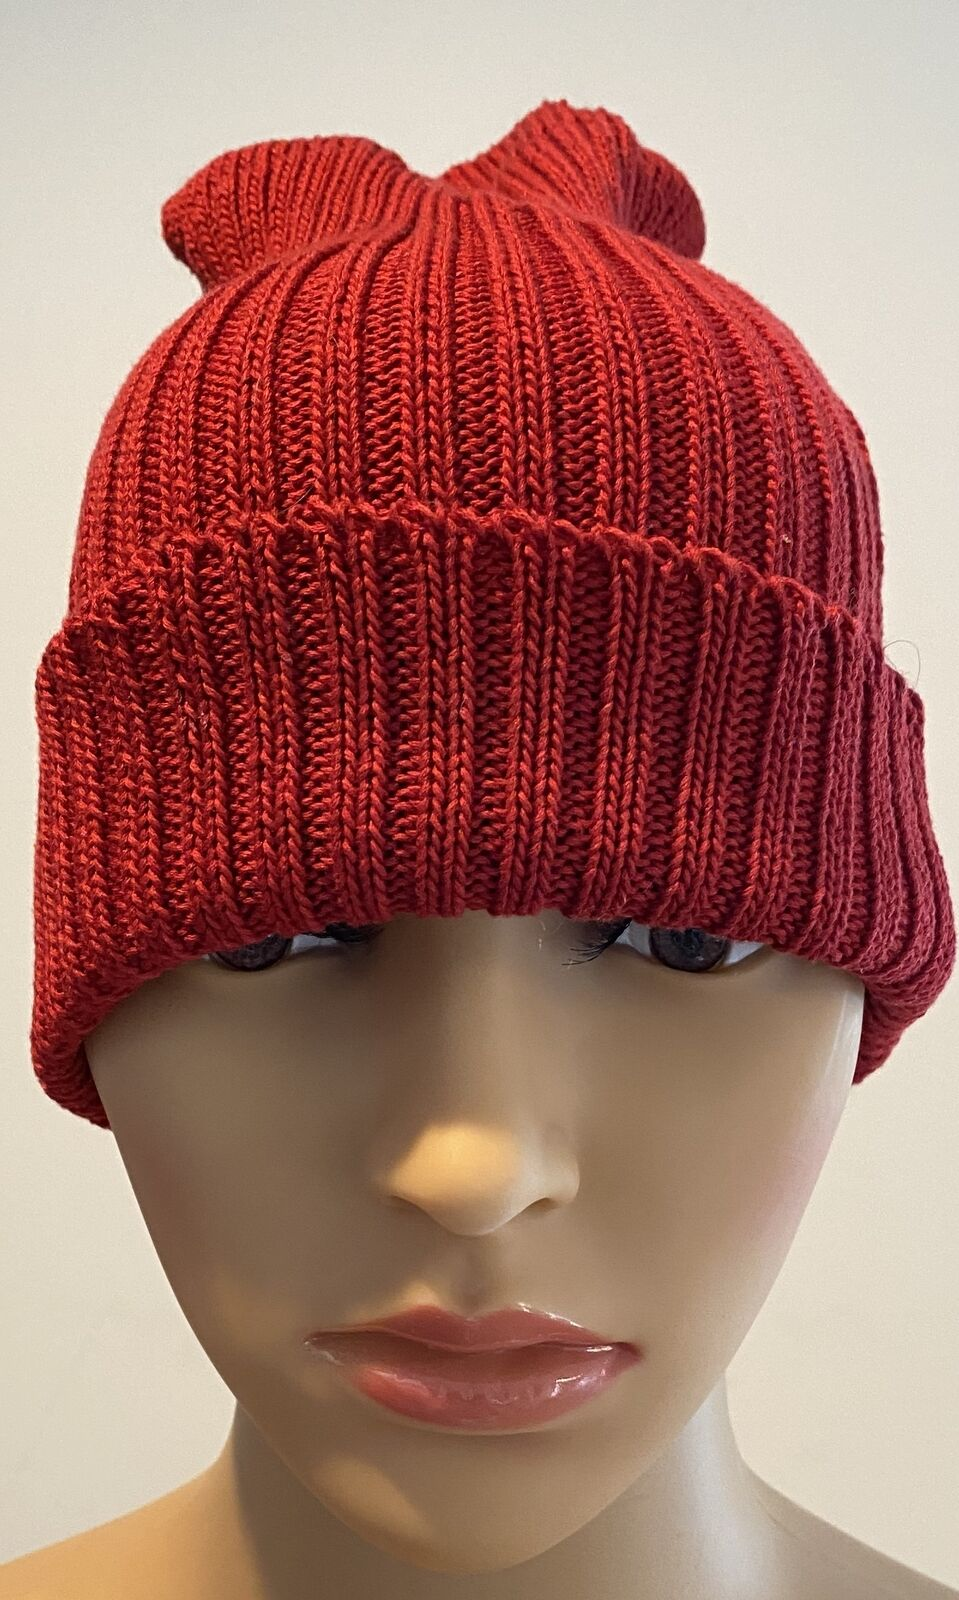 PATRICIA UNDERWOOD KNITS red ribbed beanie hat  - image 1